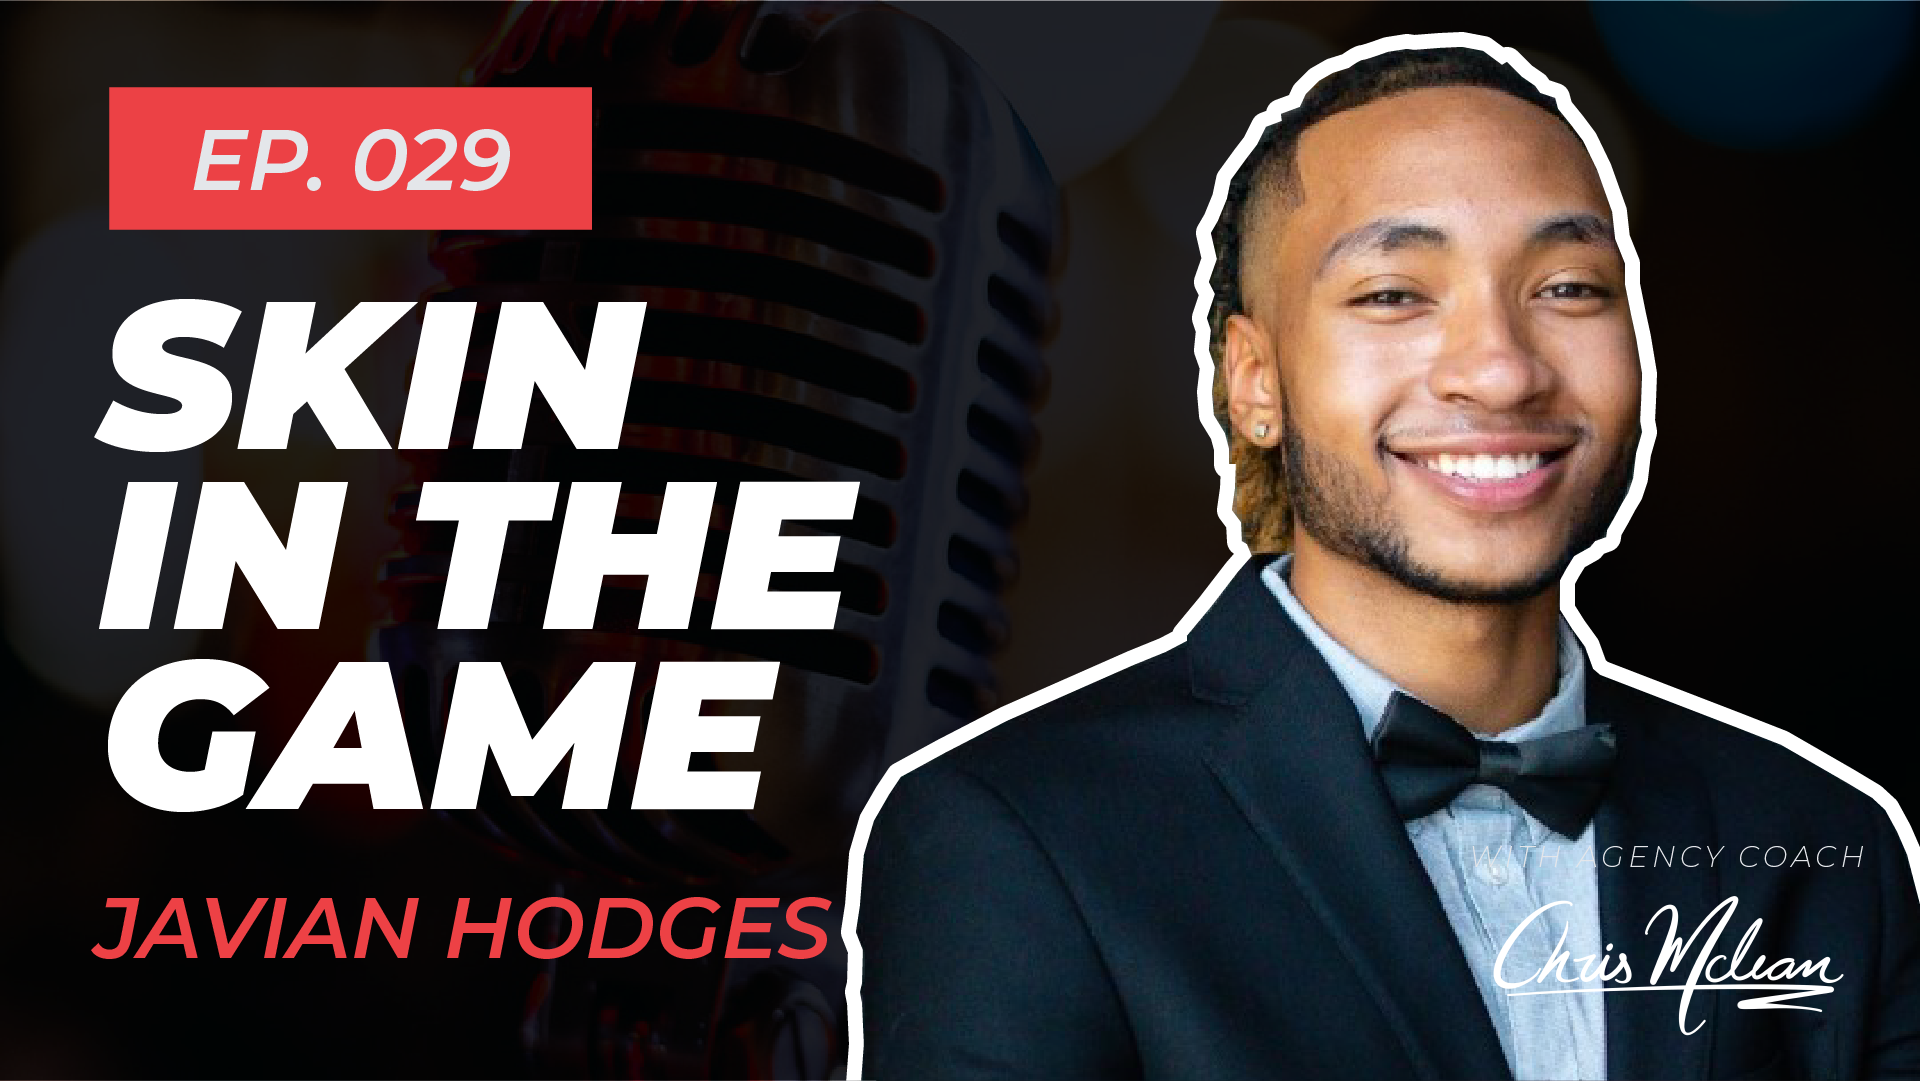 EP029 | Skin in The Game with Javian Hodges